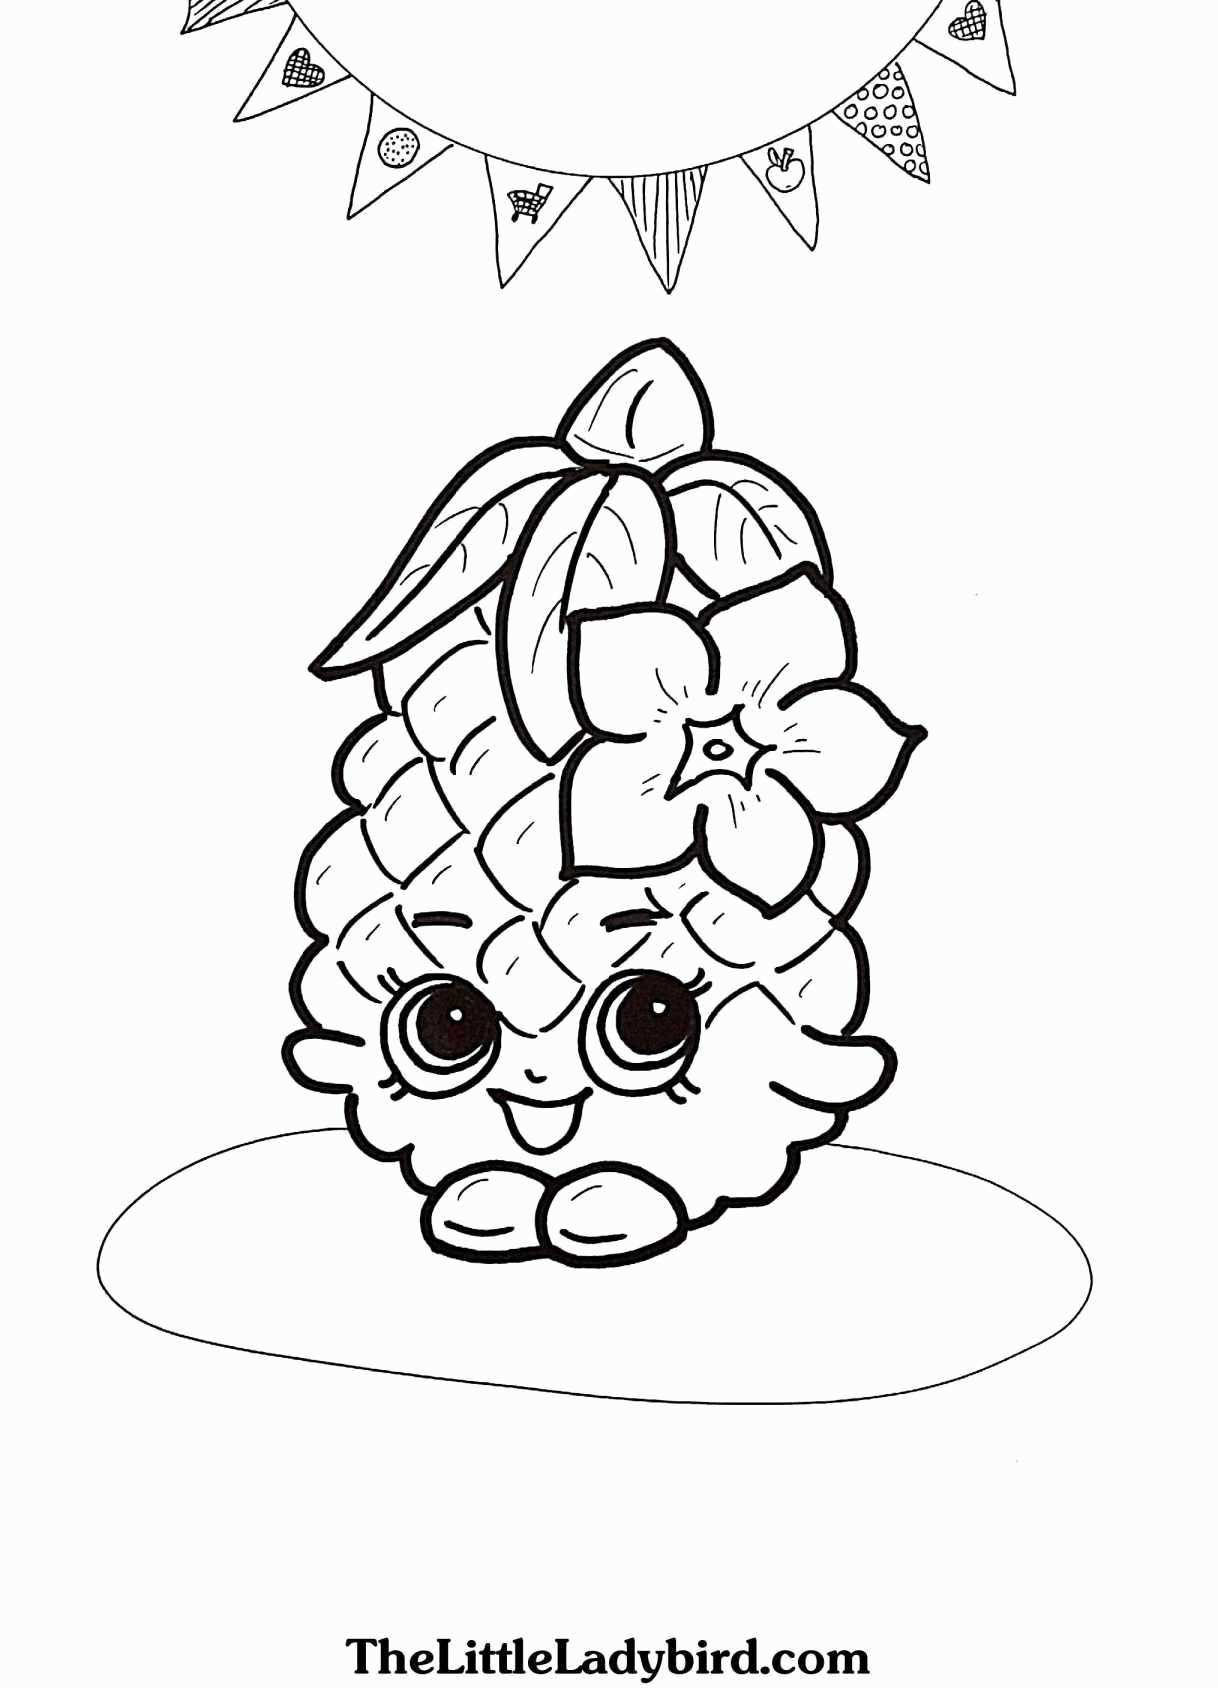 Outdoor Christmas Tree Coloring Page